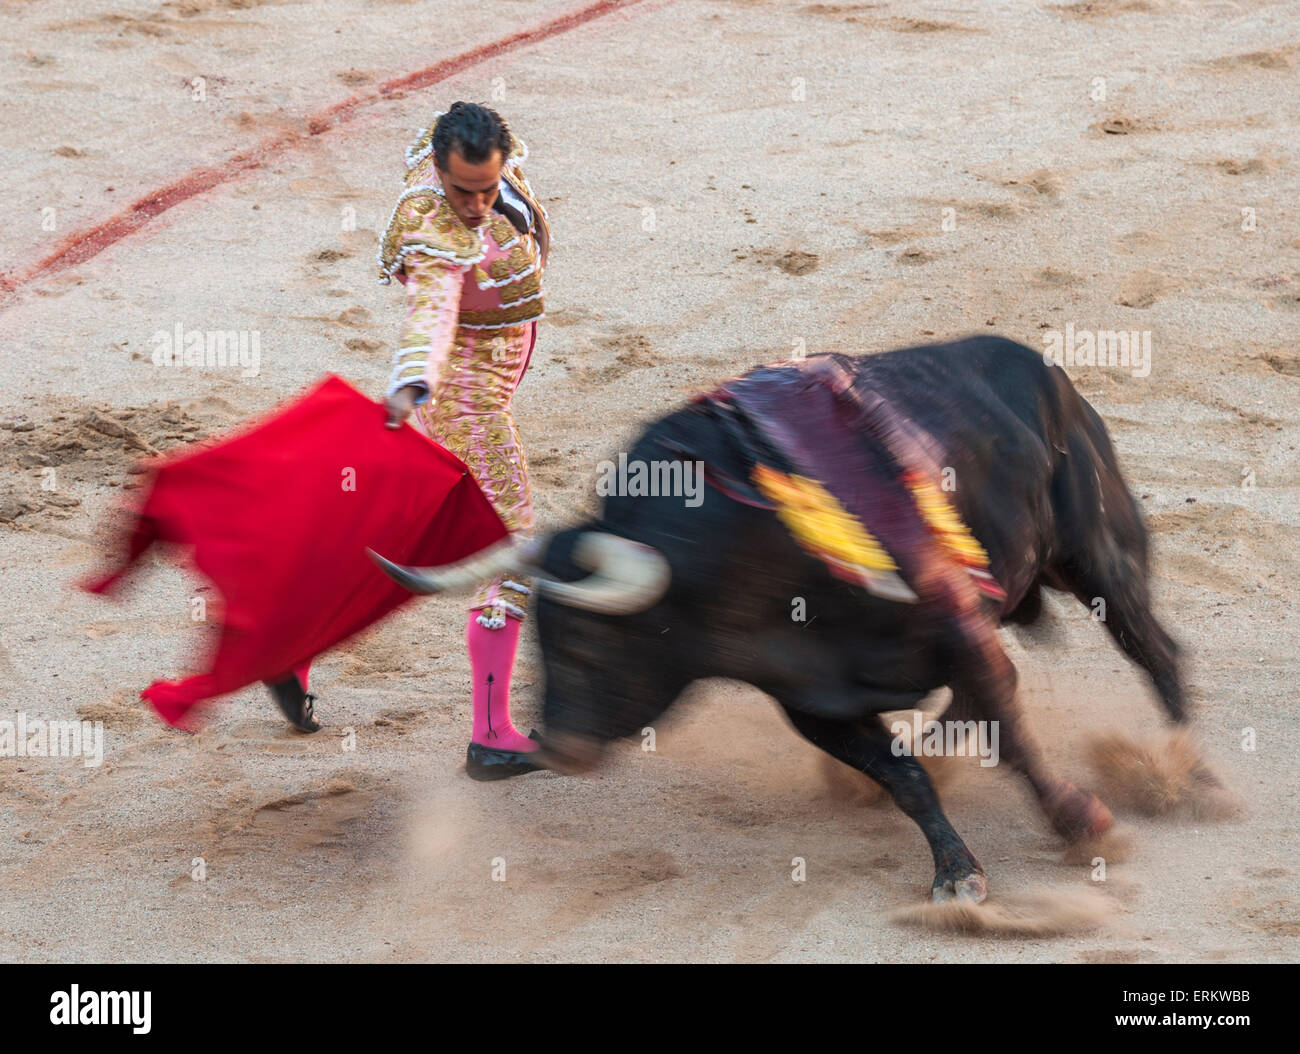 Bullfights, Festival of San Fermin, Pamplona, Navarra, Spain, Europe Stock Photo